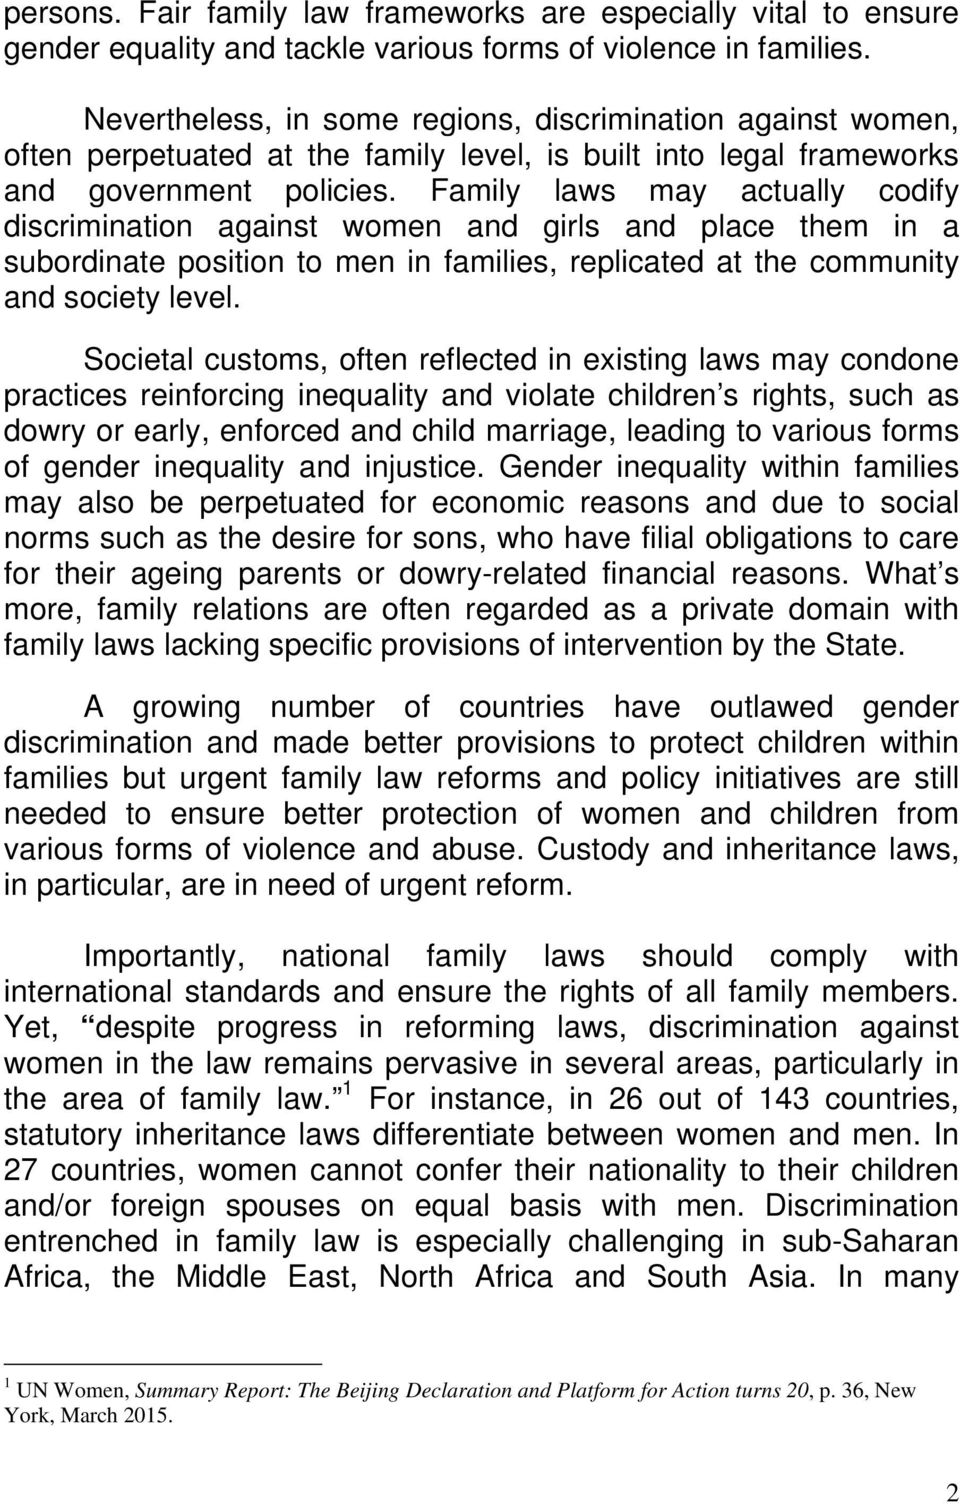 Family laws may actually codify discrimination against women and girls and place them in a subordinate position to men in families, replicated at the community and society level.